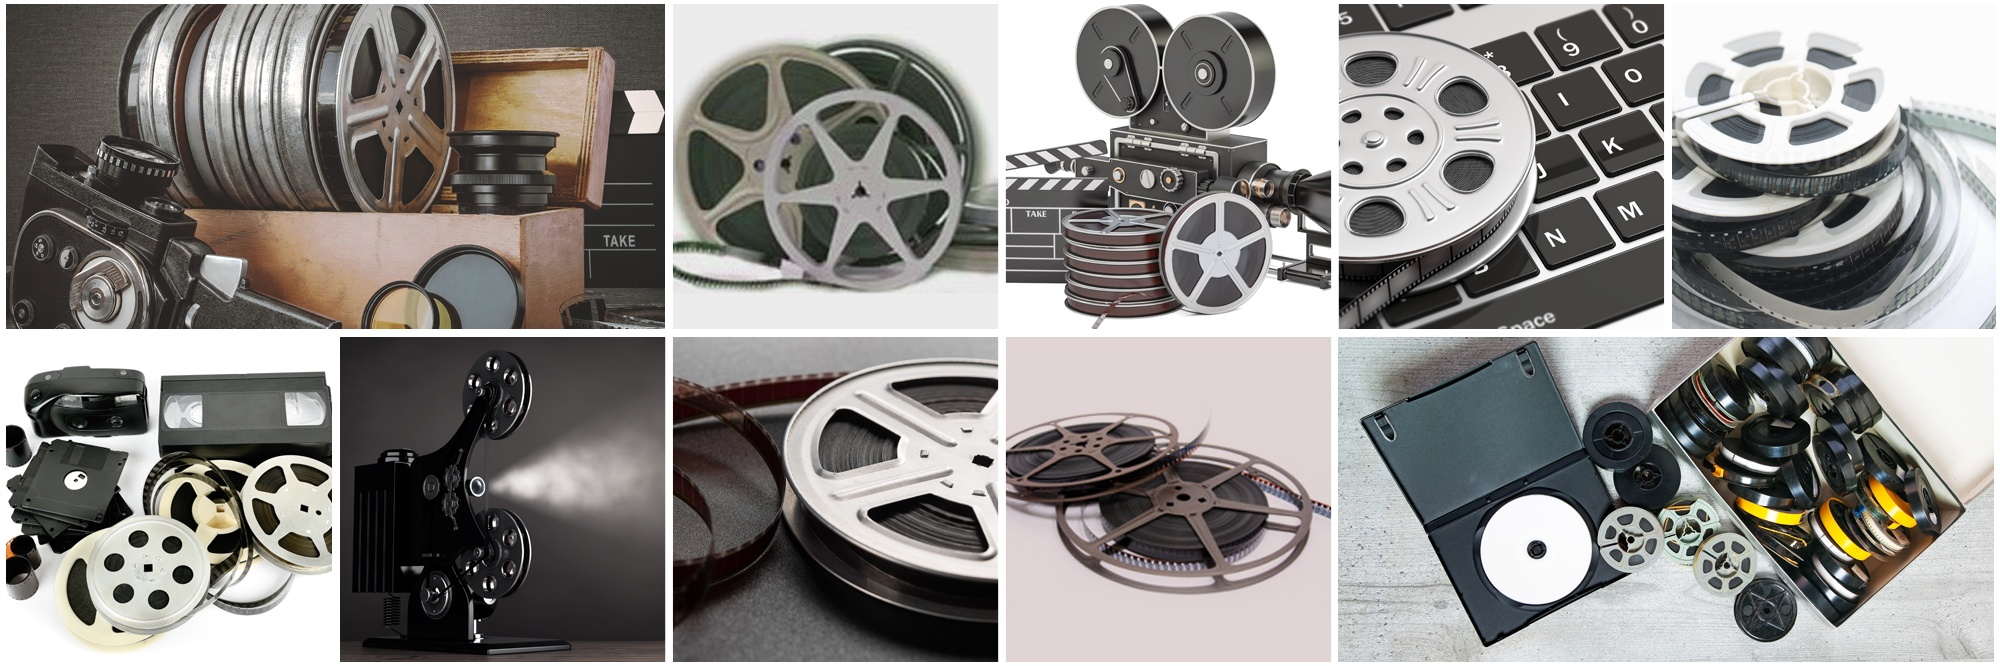 Film Scanning Services | Movie Film Transfer Services